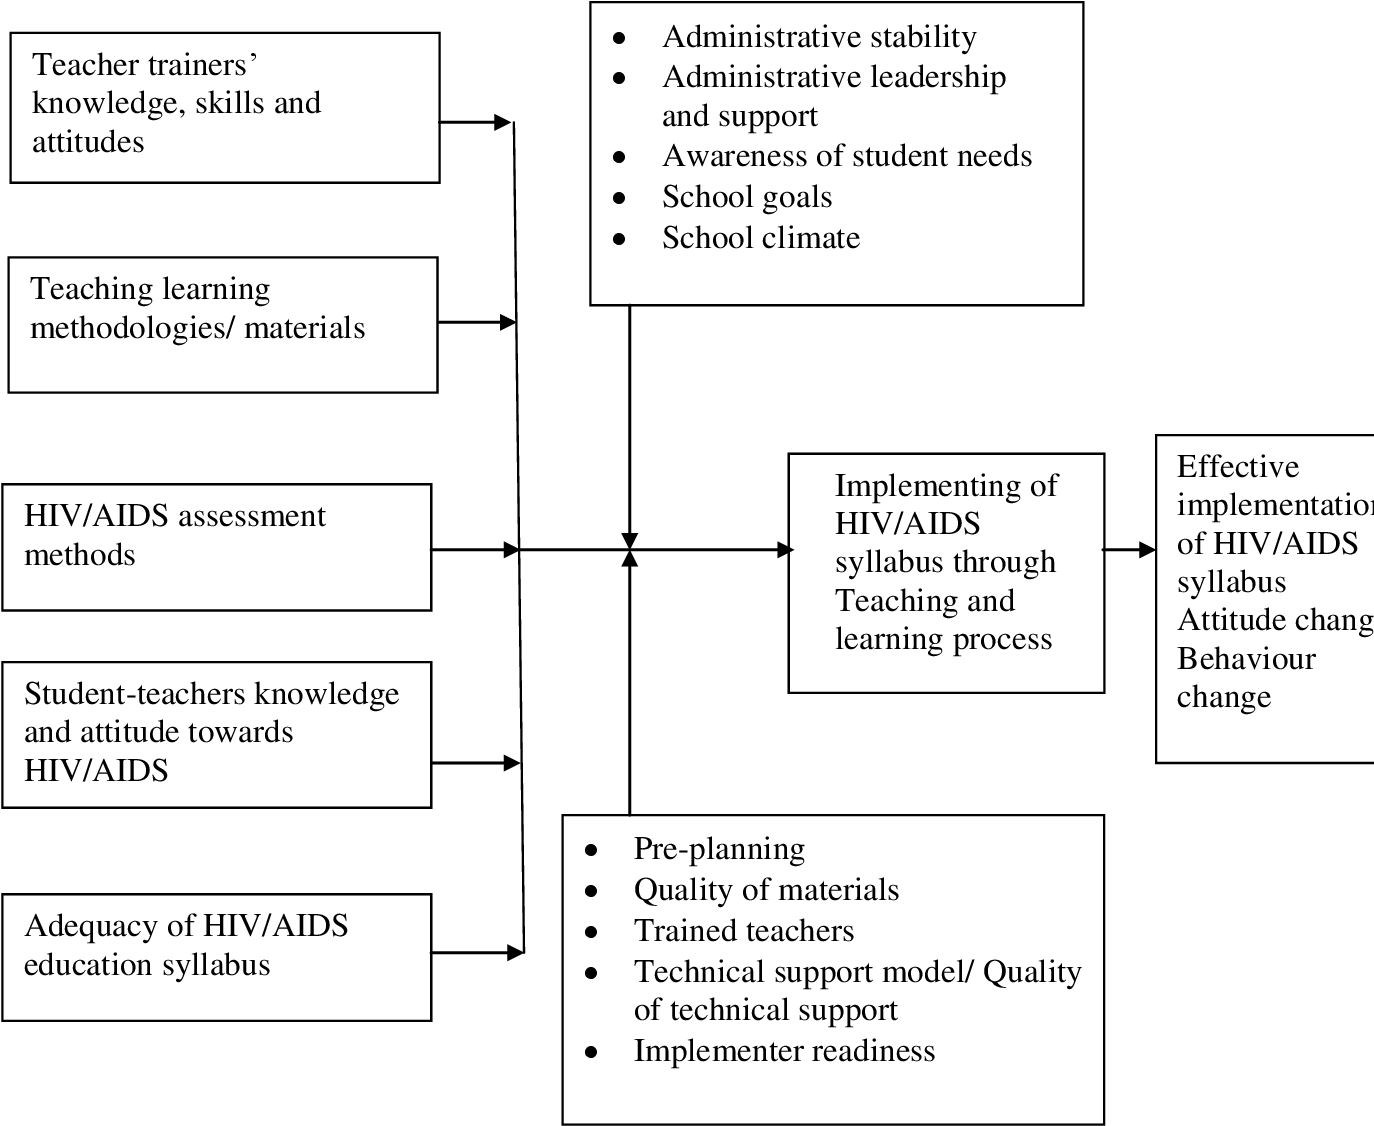 PDF] Implementation of HIV/AIDS syllabus in primary teacher